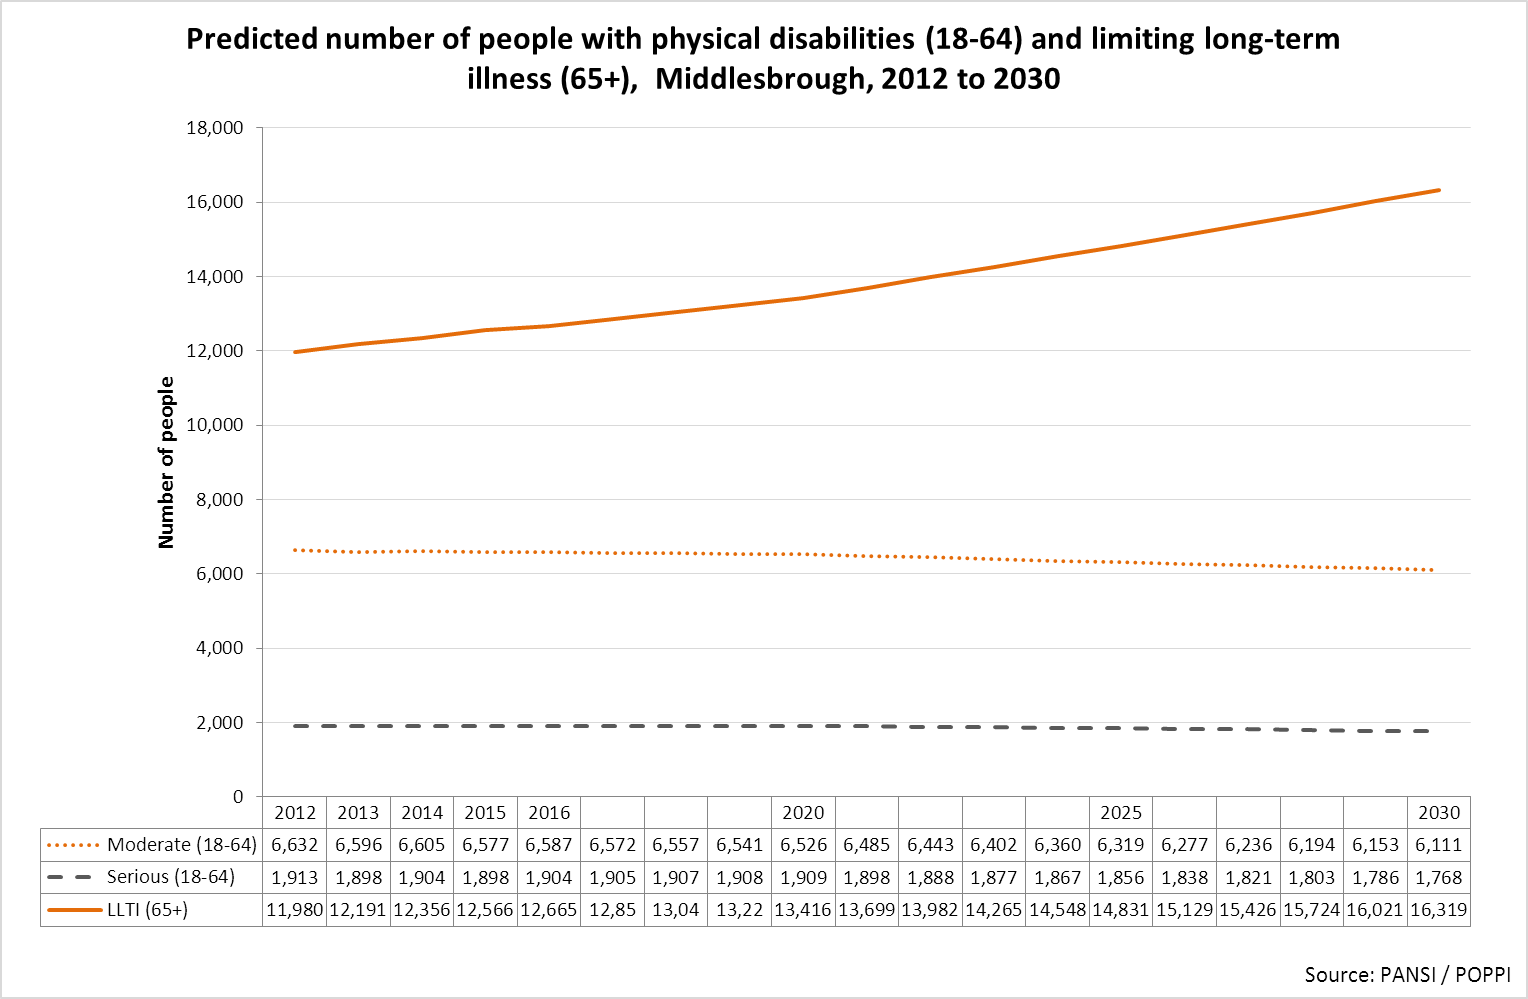 Middlesbrough forecast number of people with disabilities